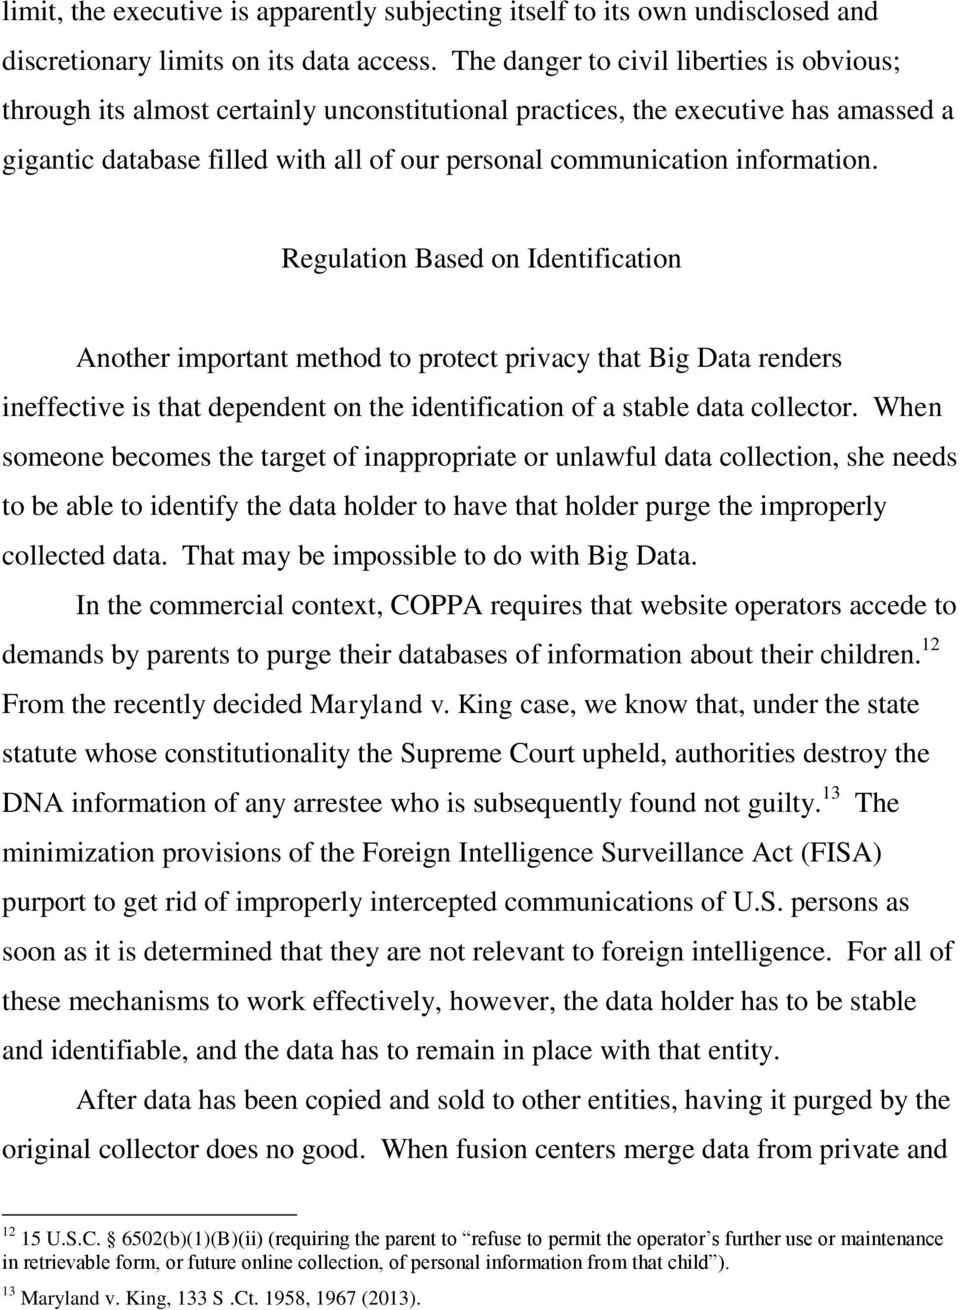 information. Regulation Based on Identification Another important method to protect privacy that Big Data renders ineffective is that dependent on the identification of a stable data collector.